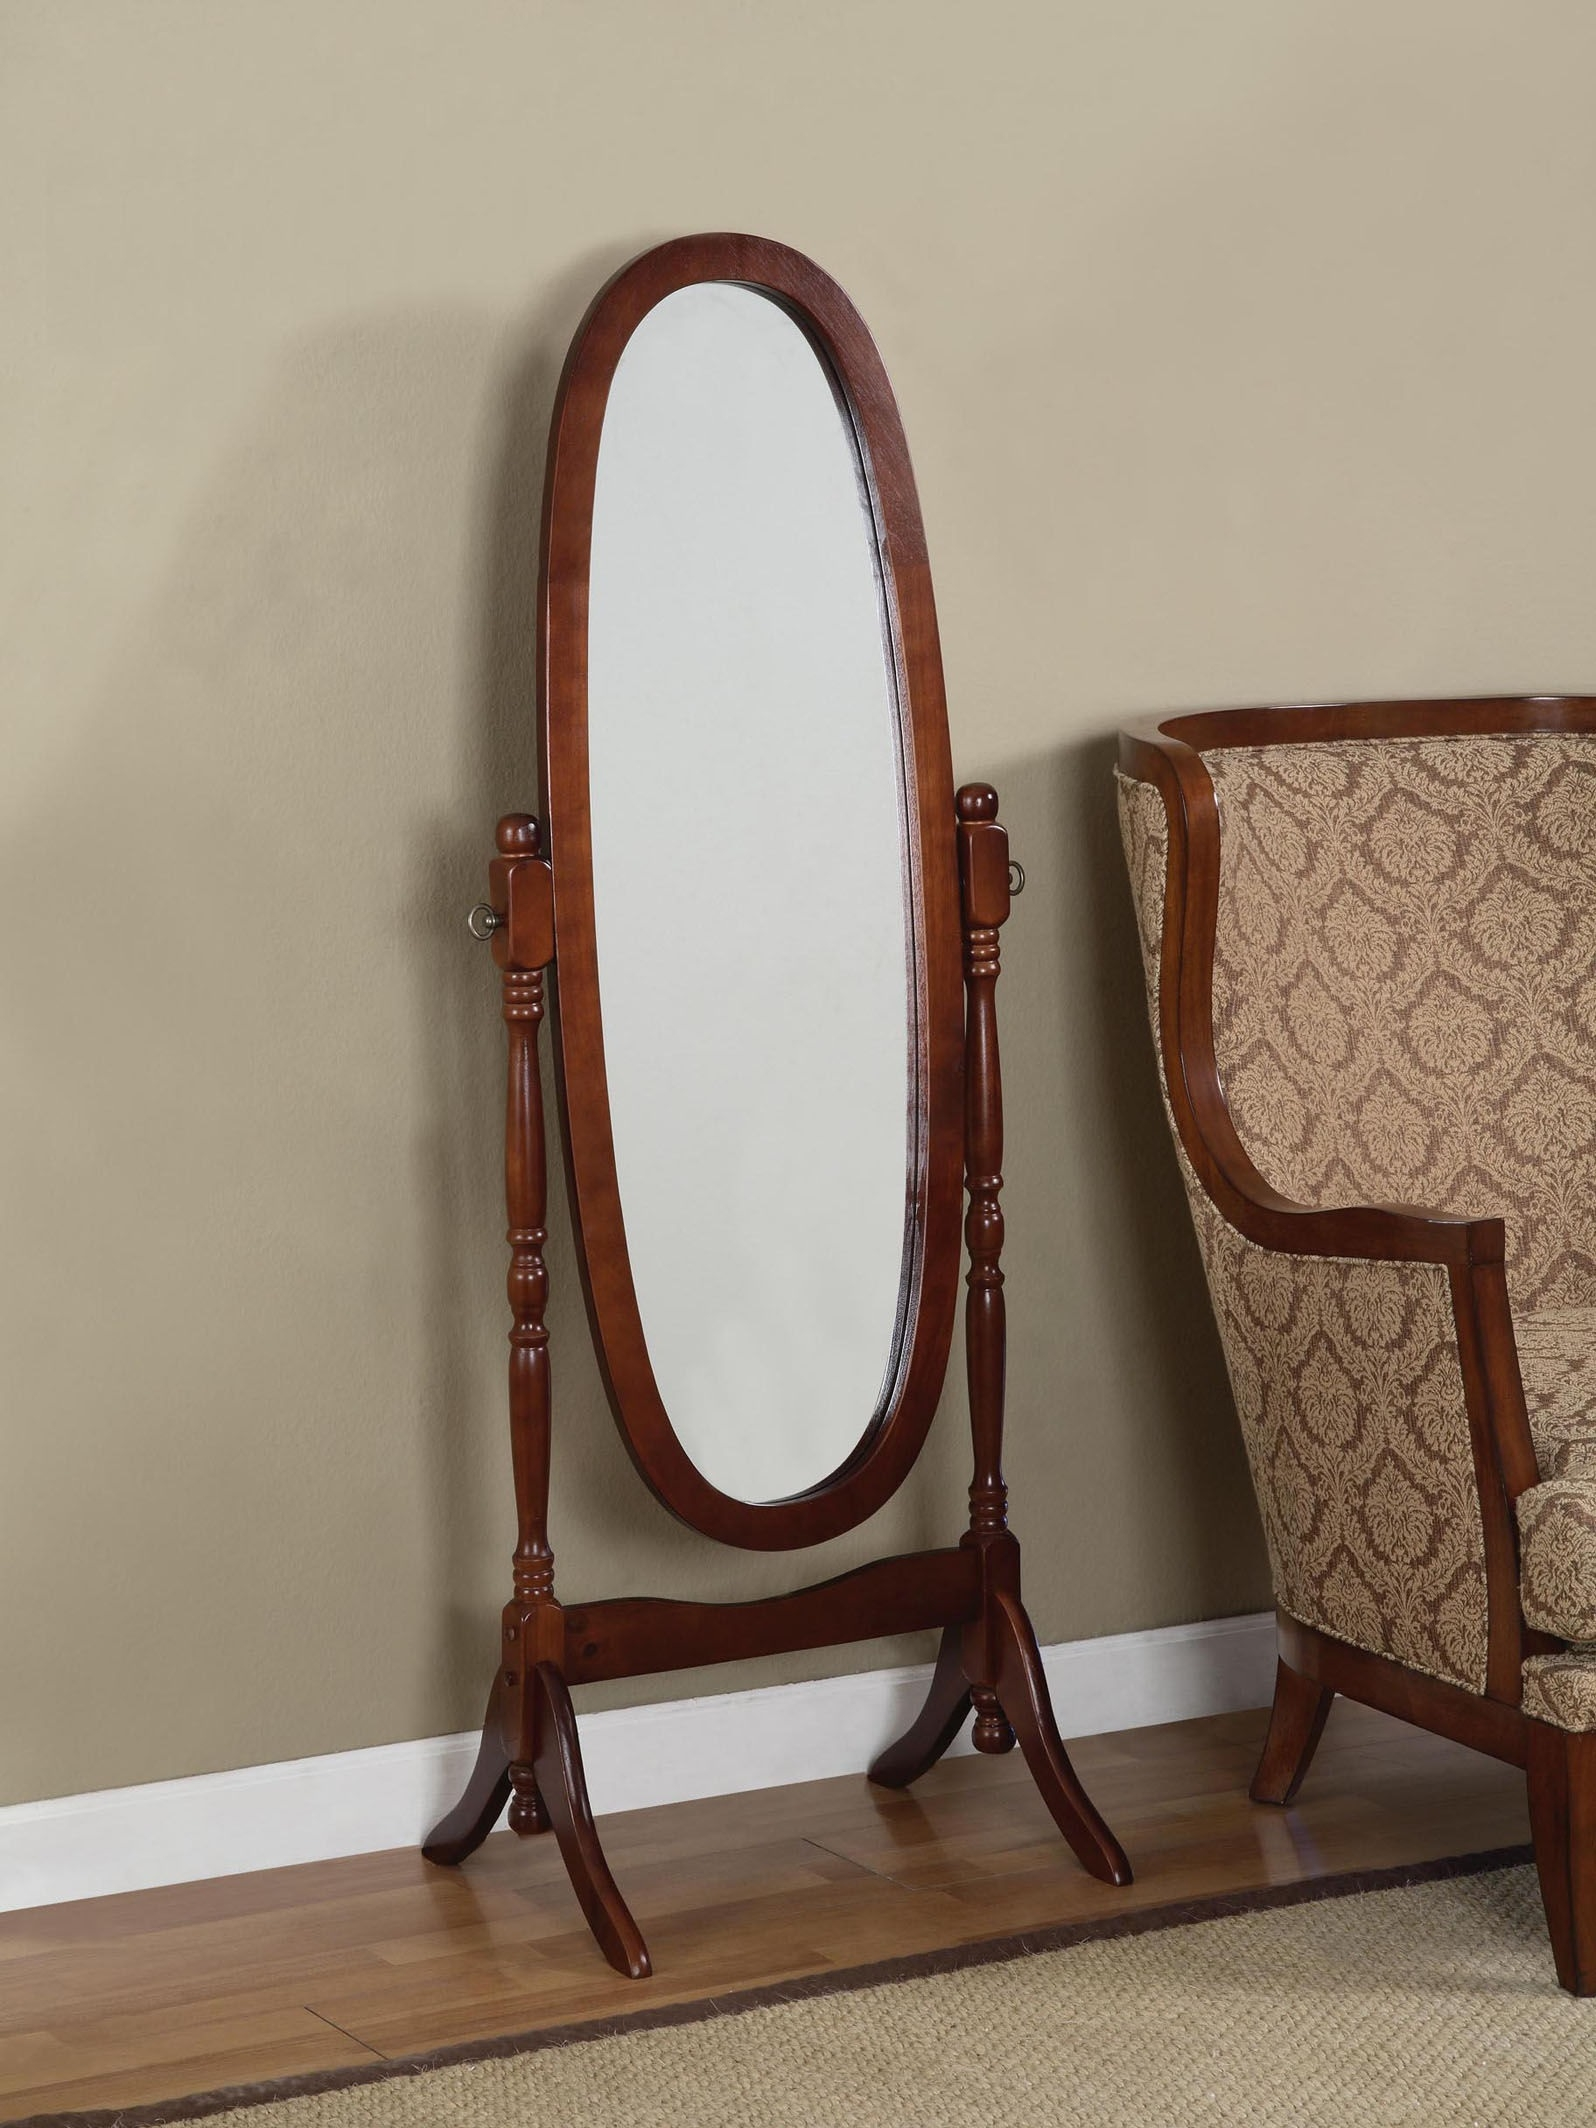 Charming Cheval Mirror Jewelry Armoire Ideas Full Length Swivel Intended For Buy Free Standing Mirror (Image 2 of 15)